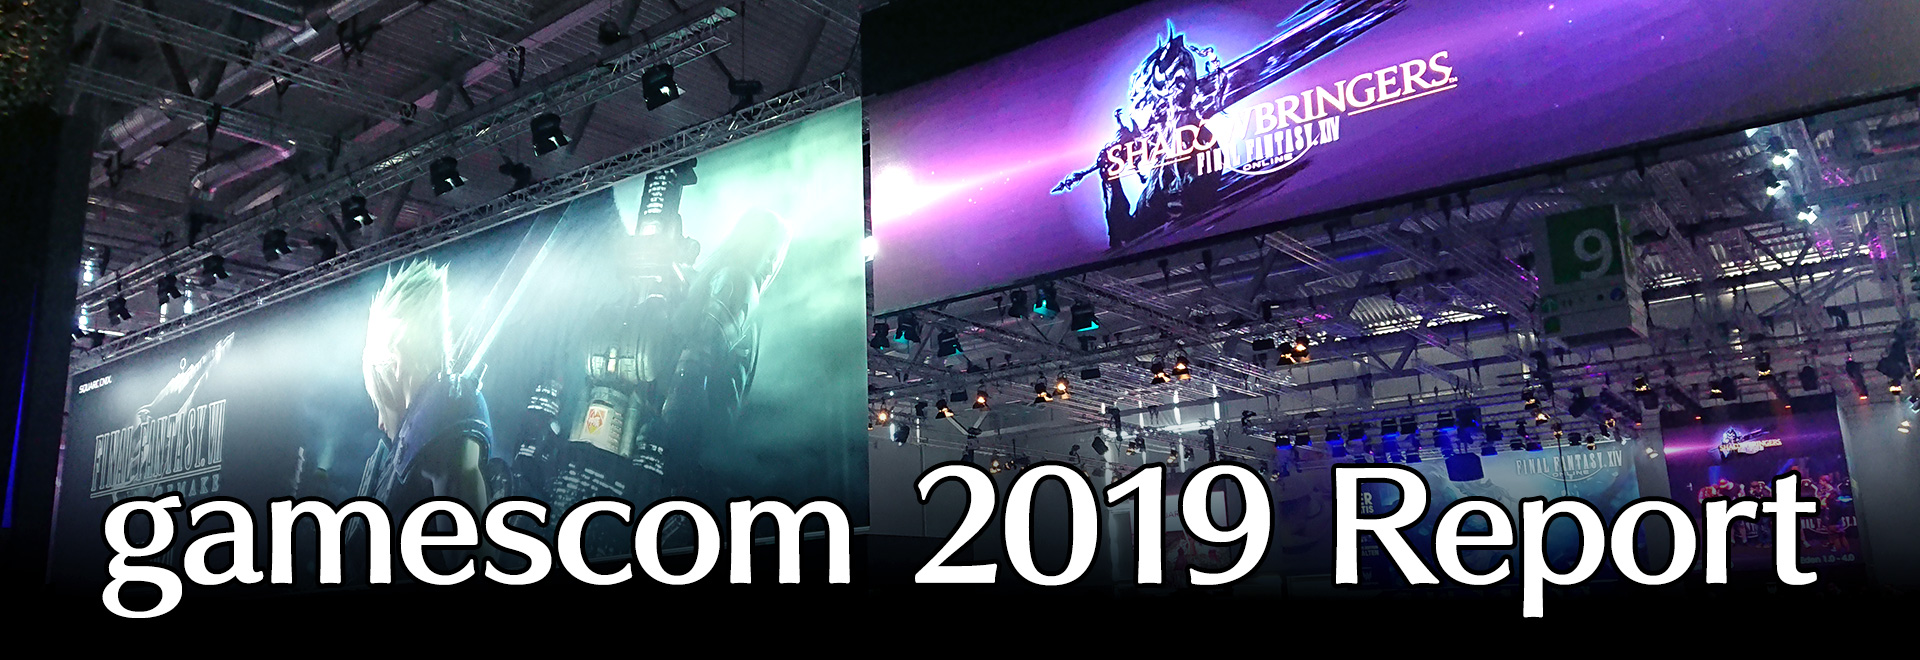 FINAL FANTASY XIV: Shadowbringers Expansion Launching 2nd